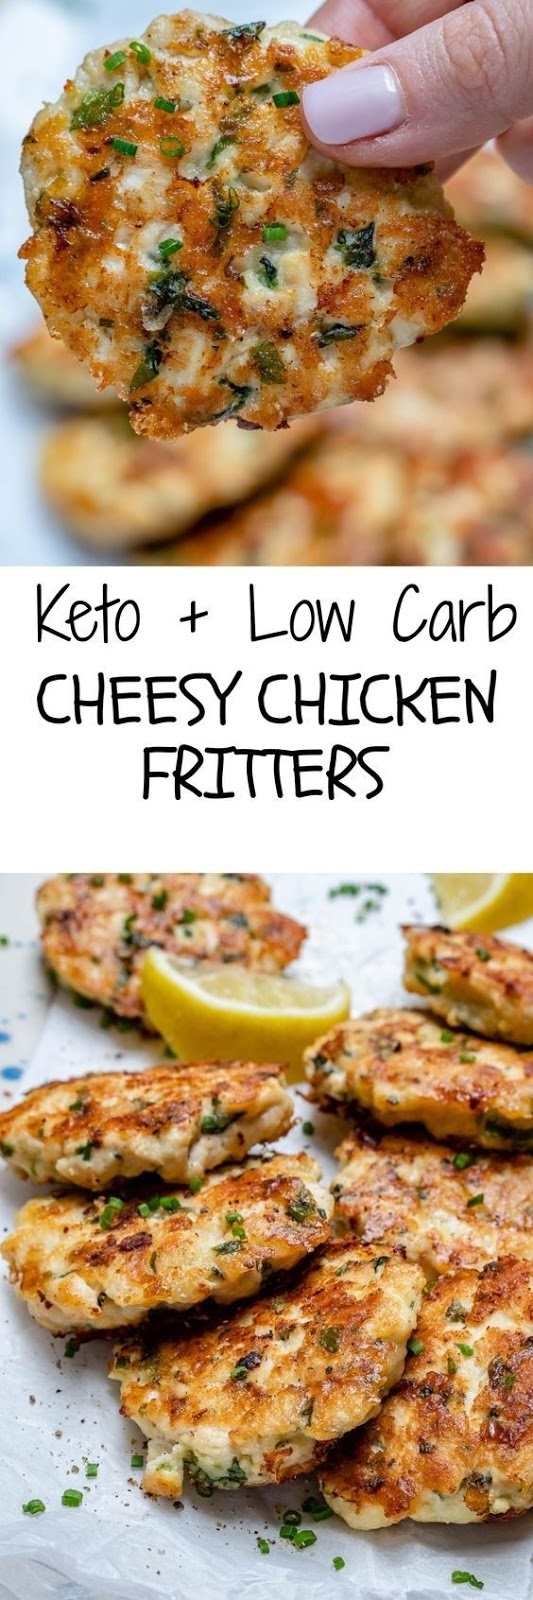 This cheesy chicken fritters recipe takes just 30 minutes to make, so it's super easy and also perfect for the Keto diet. As you will see in other recipes, there are many ways of preparing the mixture for the cheesy chicken fritters. But I wanted to make them Ketogenic so I had to stick within the rules and use only approved ingredients.